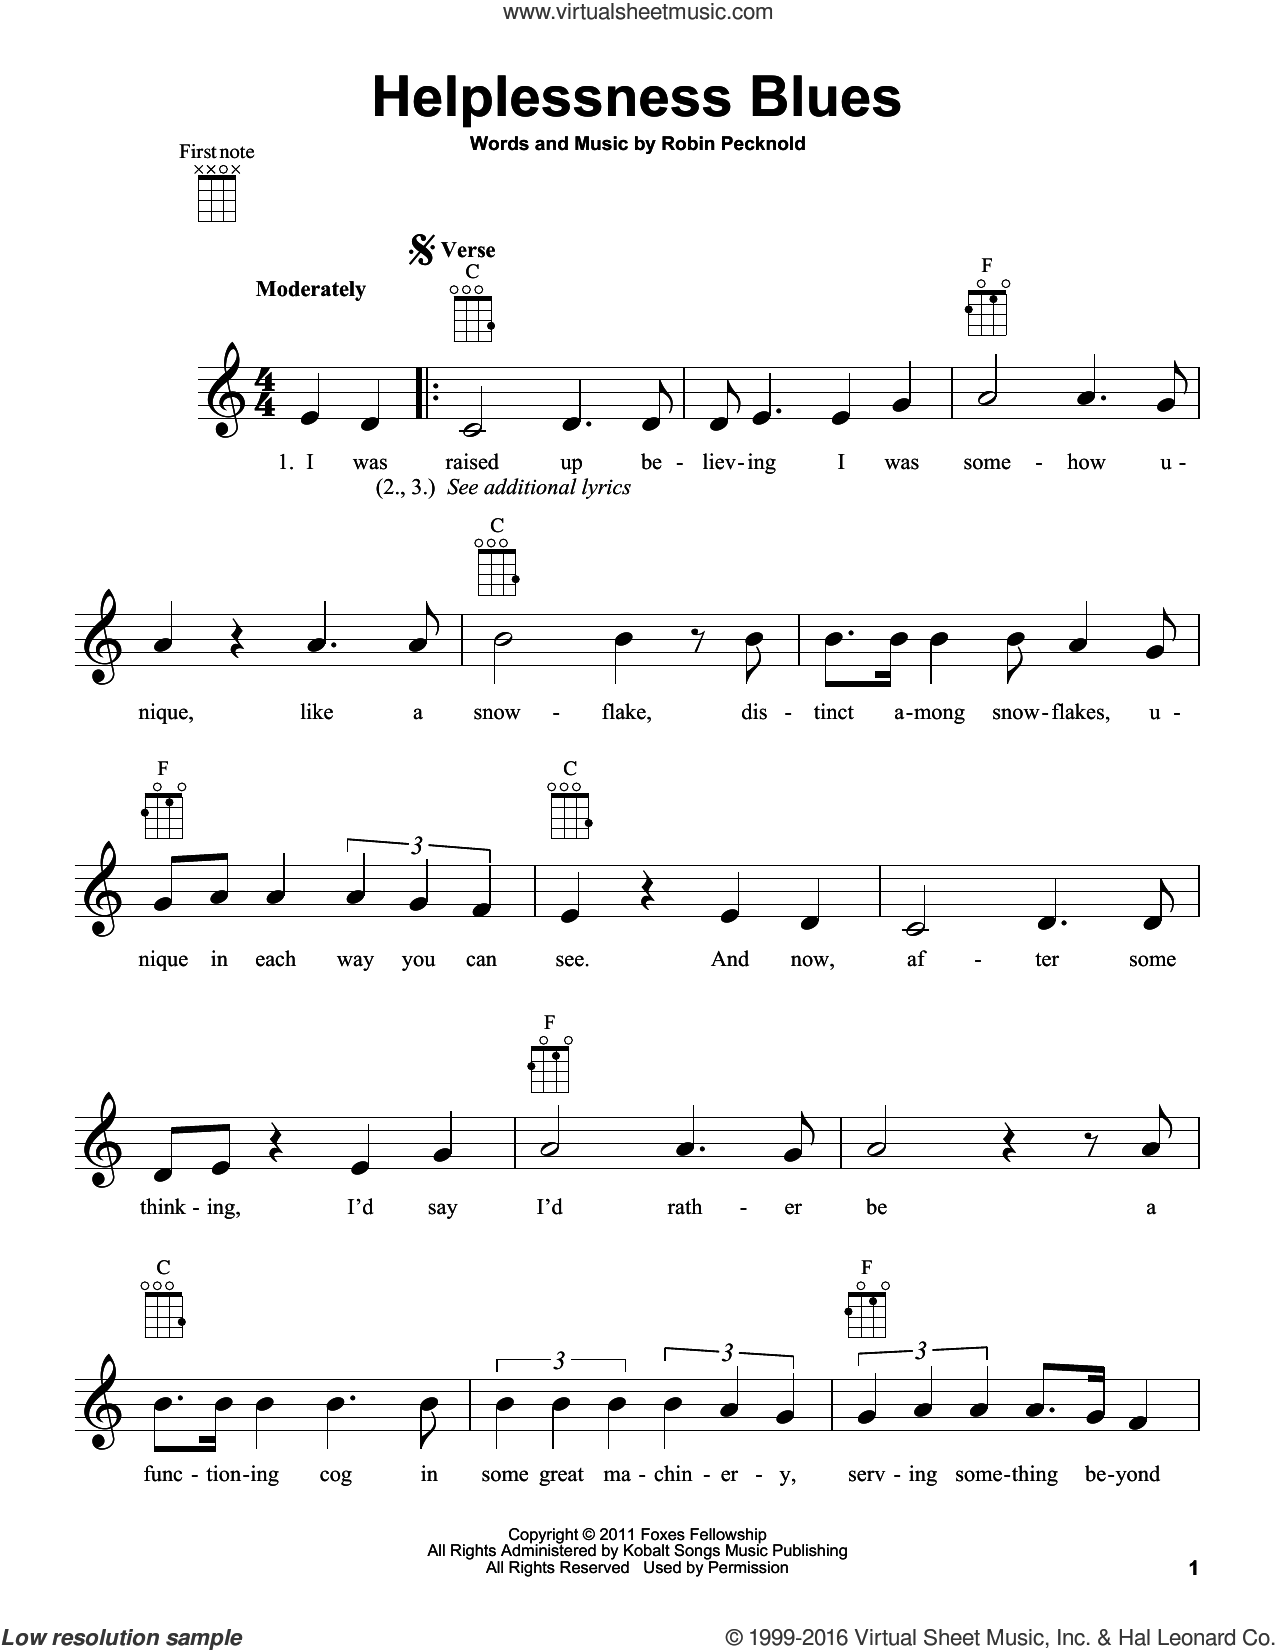 Helplessness Blues sheet music for ukulele by Robin Pecknold